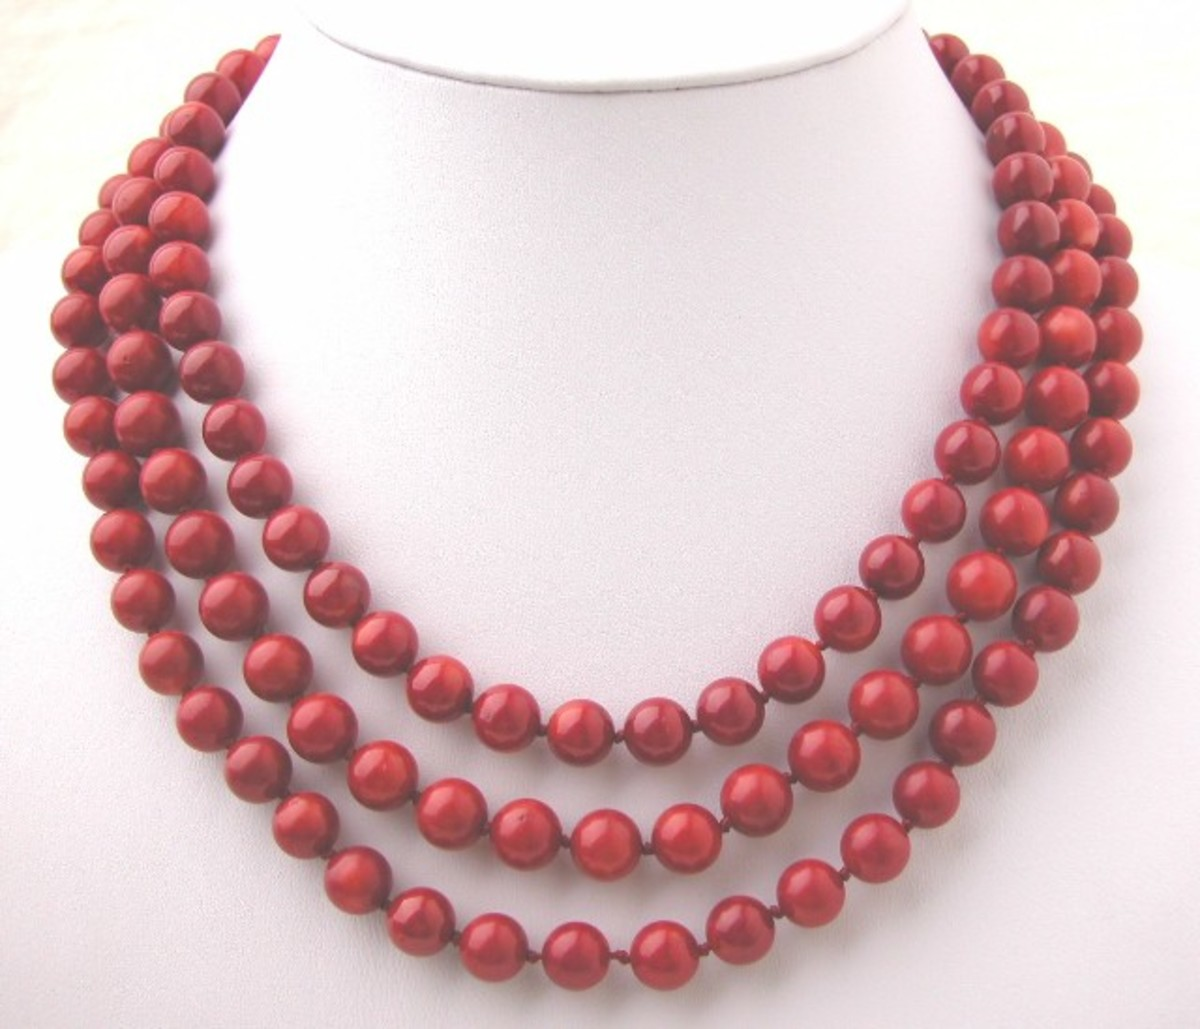 Italian Red Coral Necklace AAA+ Quality